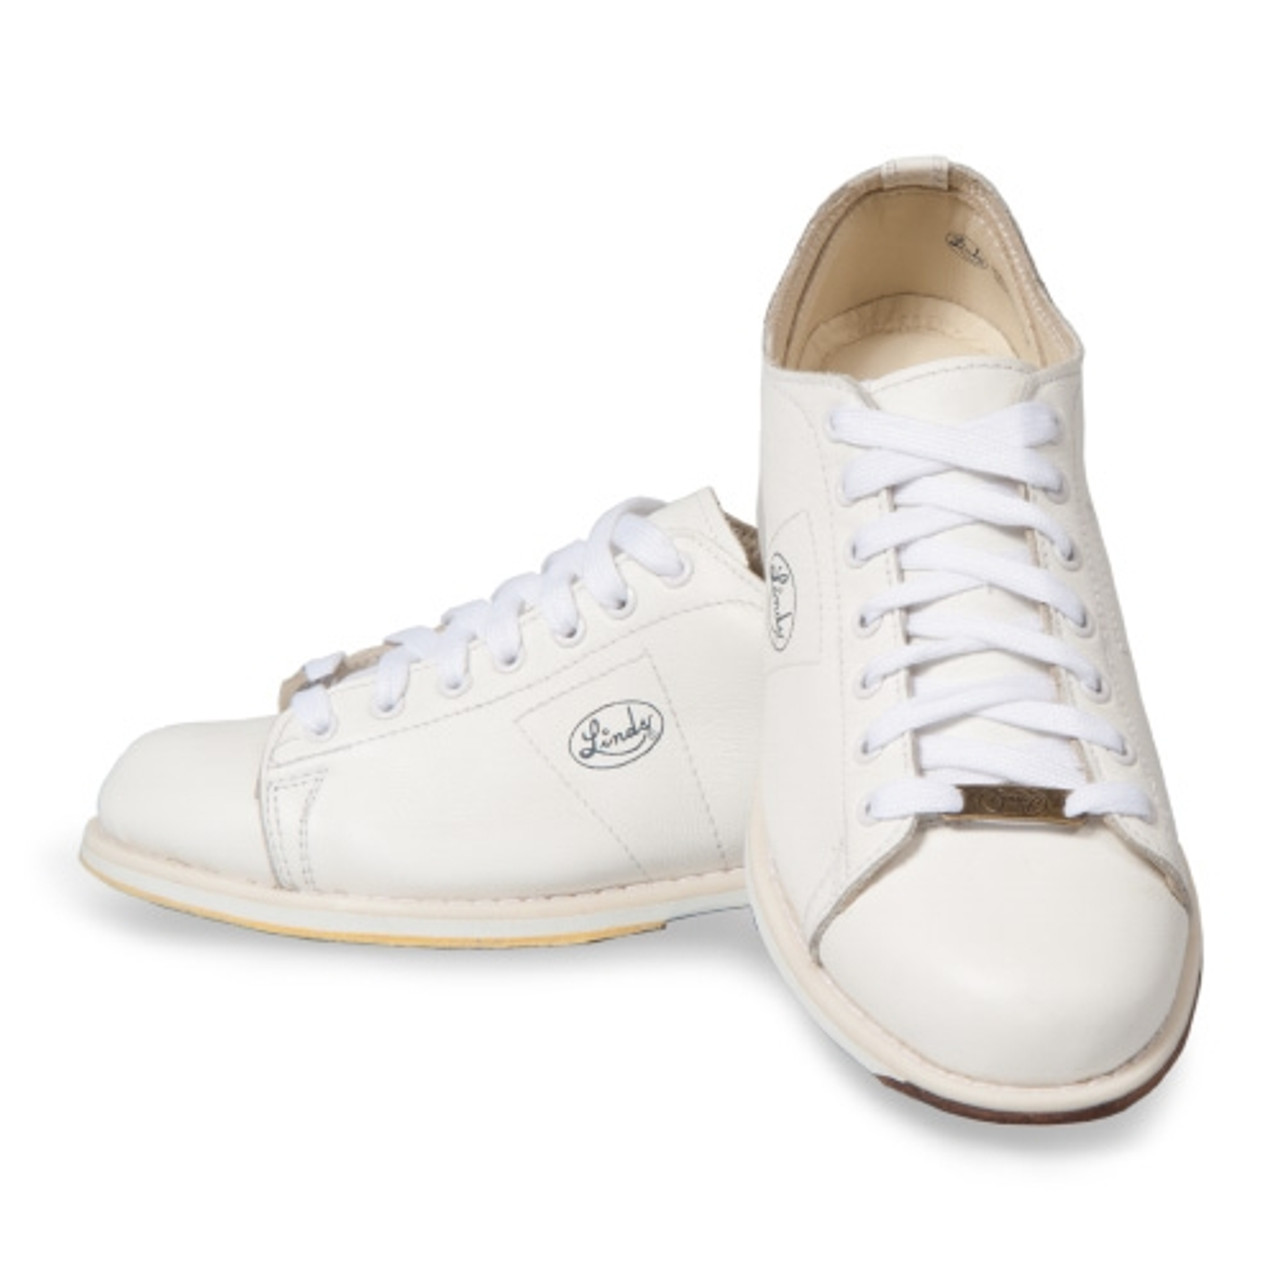 Linds Classic Womens Bowling Shoes